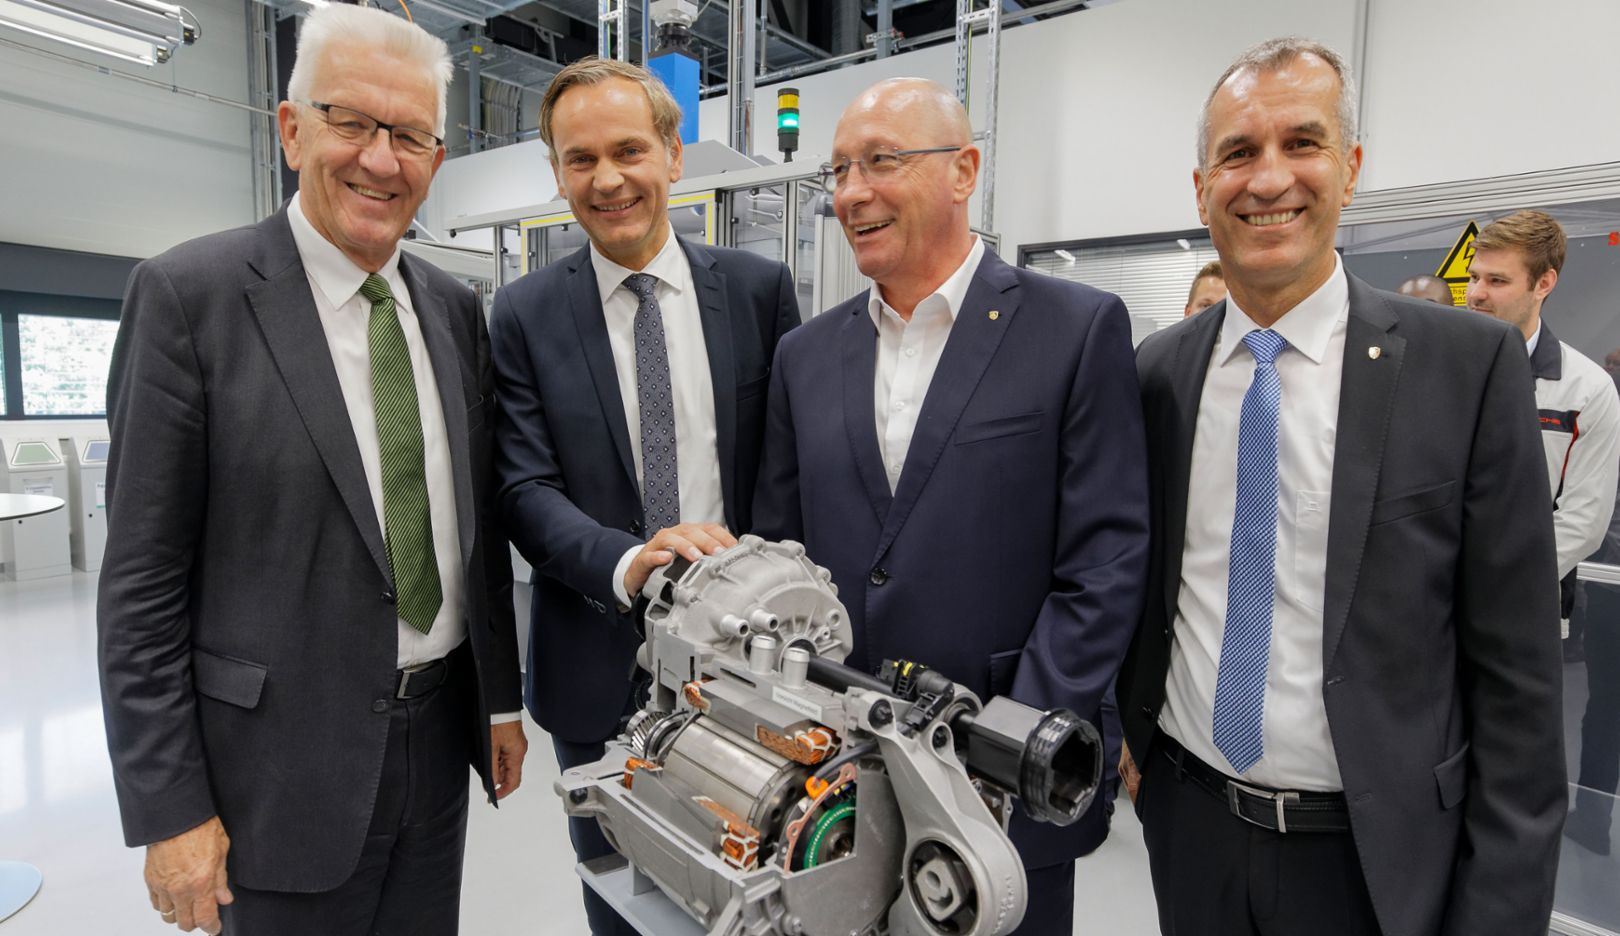 Winfried Kretschmann, Minister-President of Baden-Württemberg, Oliver Blume, Chairman of the Executive Board at Porsche, Uwe Hück, Chairman of the Group Works Council, Albrecht Reimold, Member of the Executive Board for Production and Logistics, l-r, Stuttgart, 2017, Porsche AG